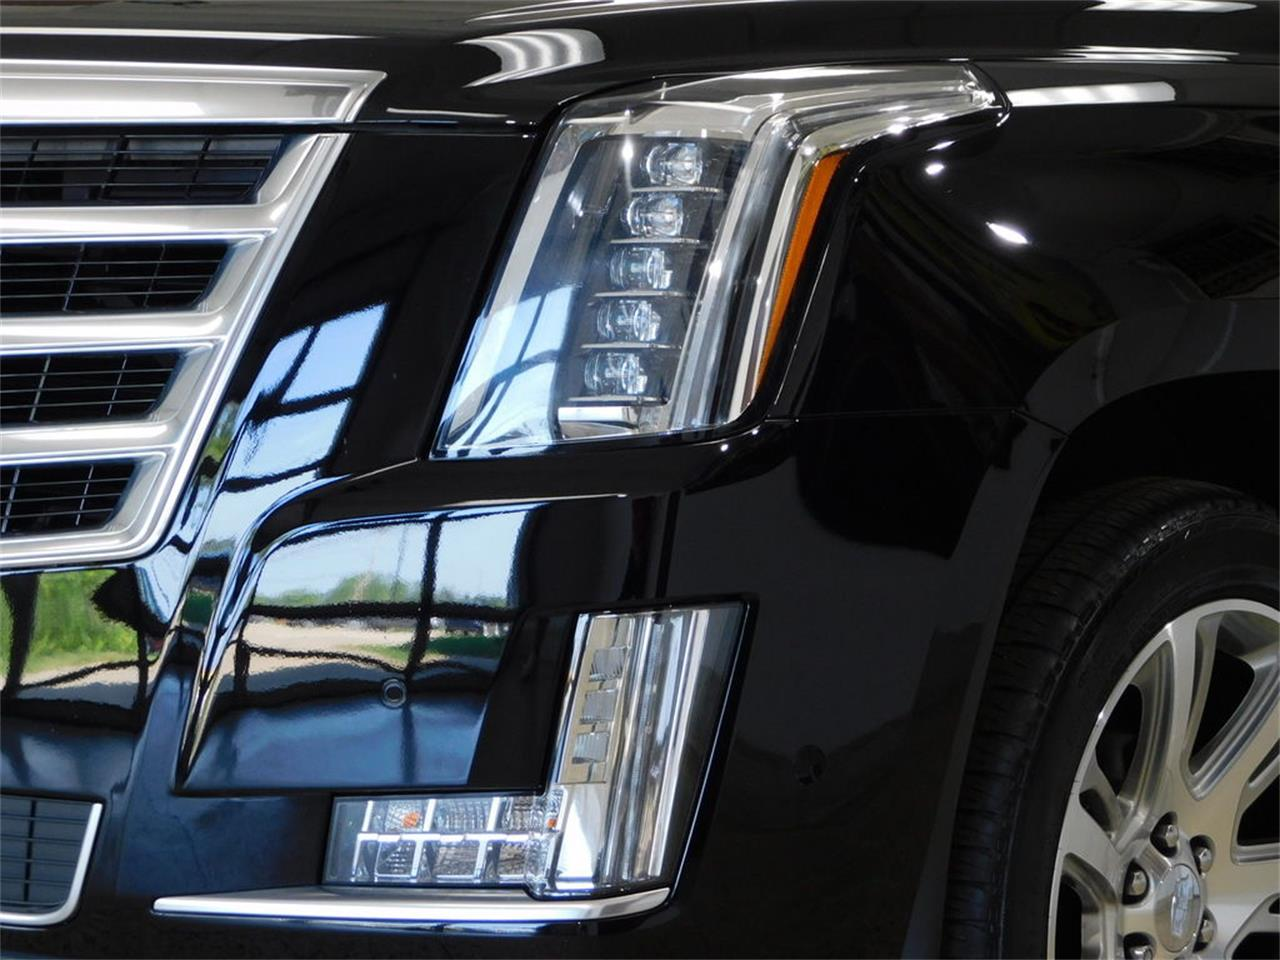 2017 Cadillac Escalade (CC-1387746) for sale in Hamburg, New York